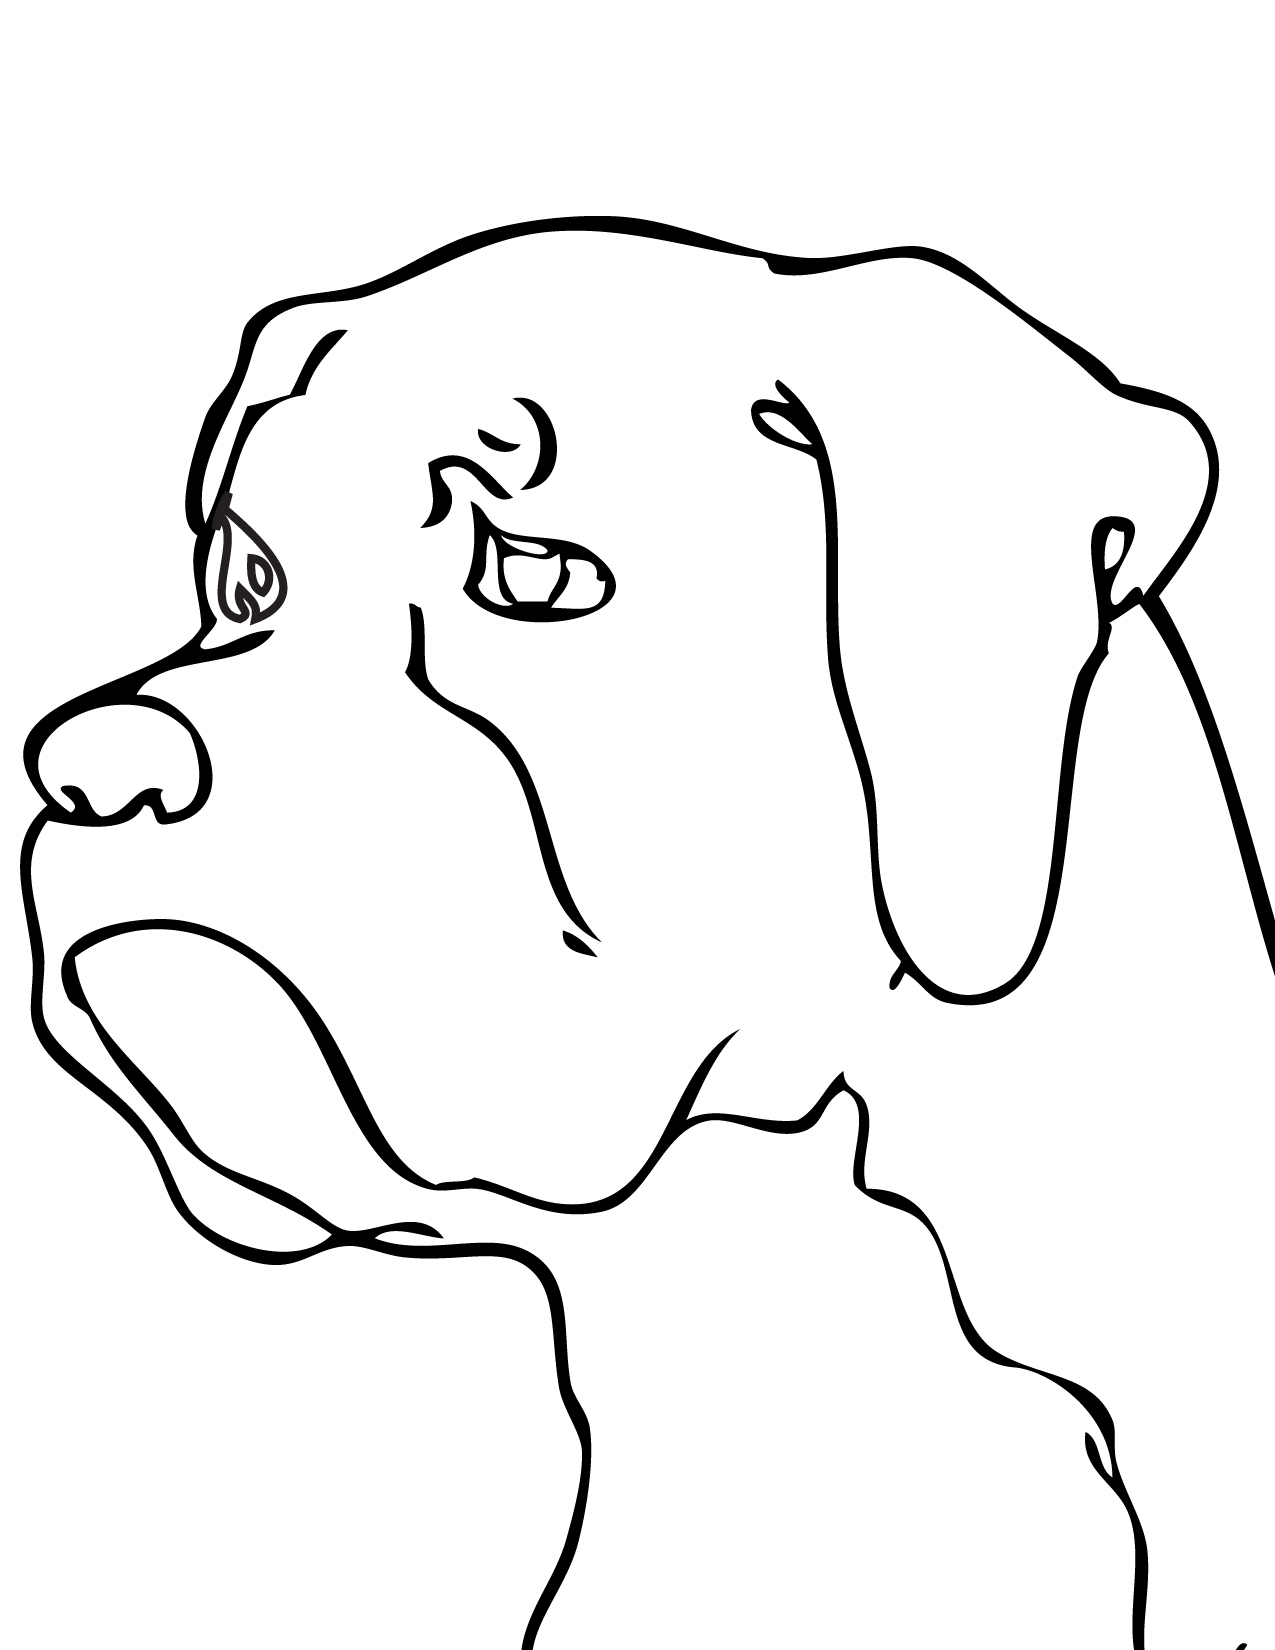 Boxer Coloring Page - Handipoints